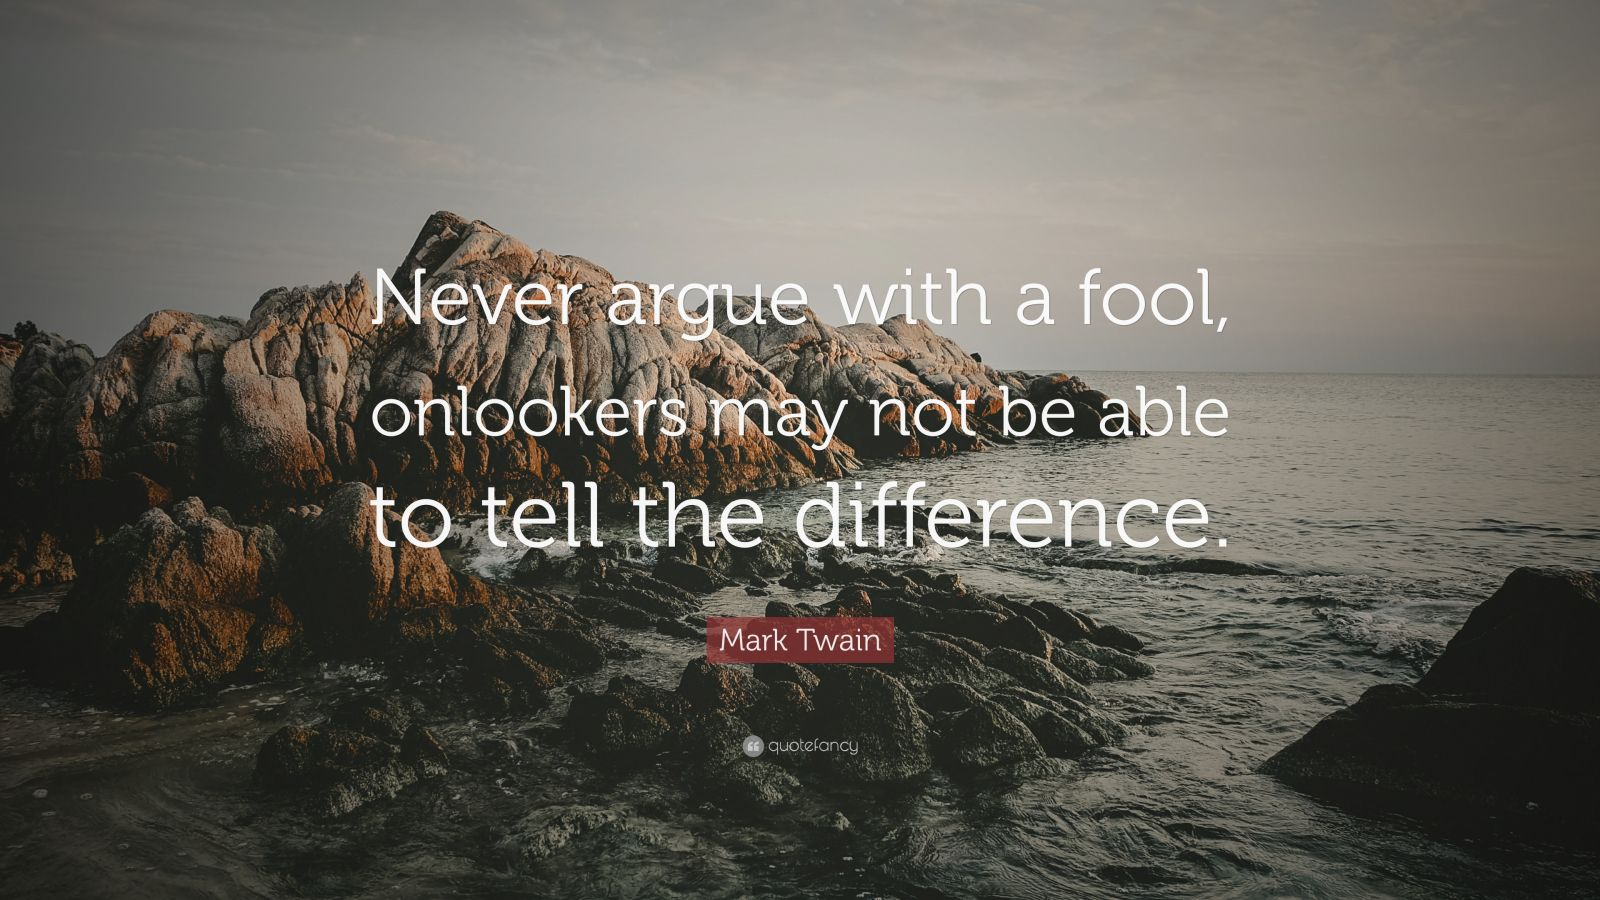 Mark Twain Quotes Don T Argue With A Fool